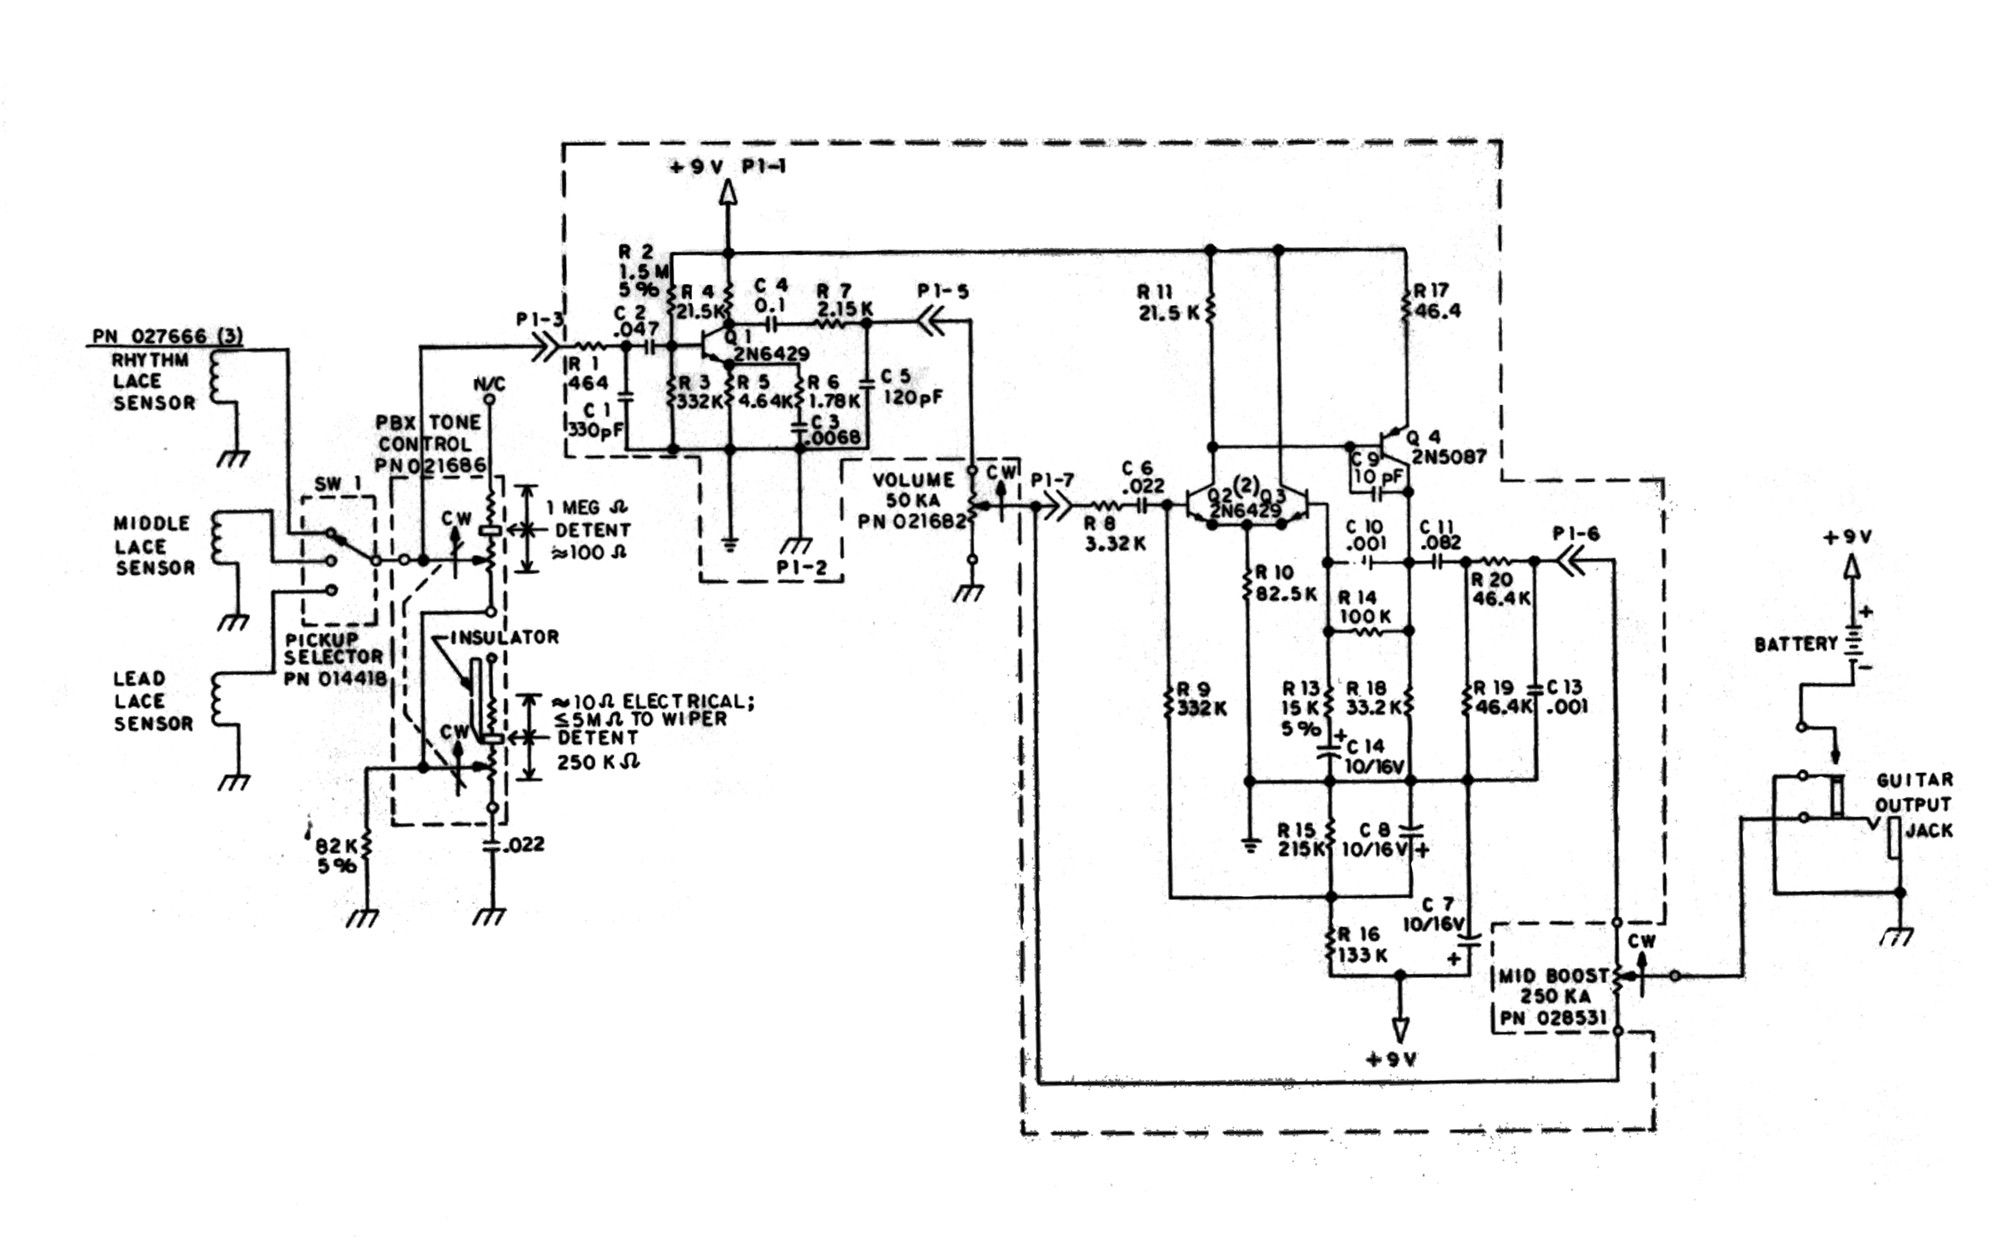 small resolution of fender noiseless jazz bass pickups wiring diagram fresh stewmac intended for stewmac wiring diagrams